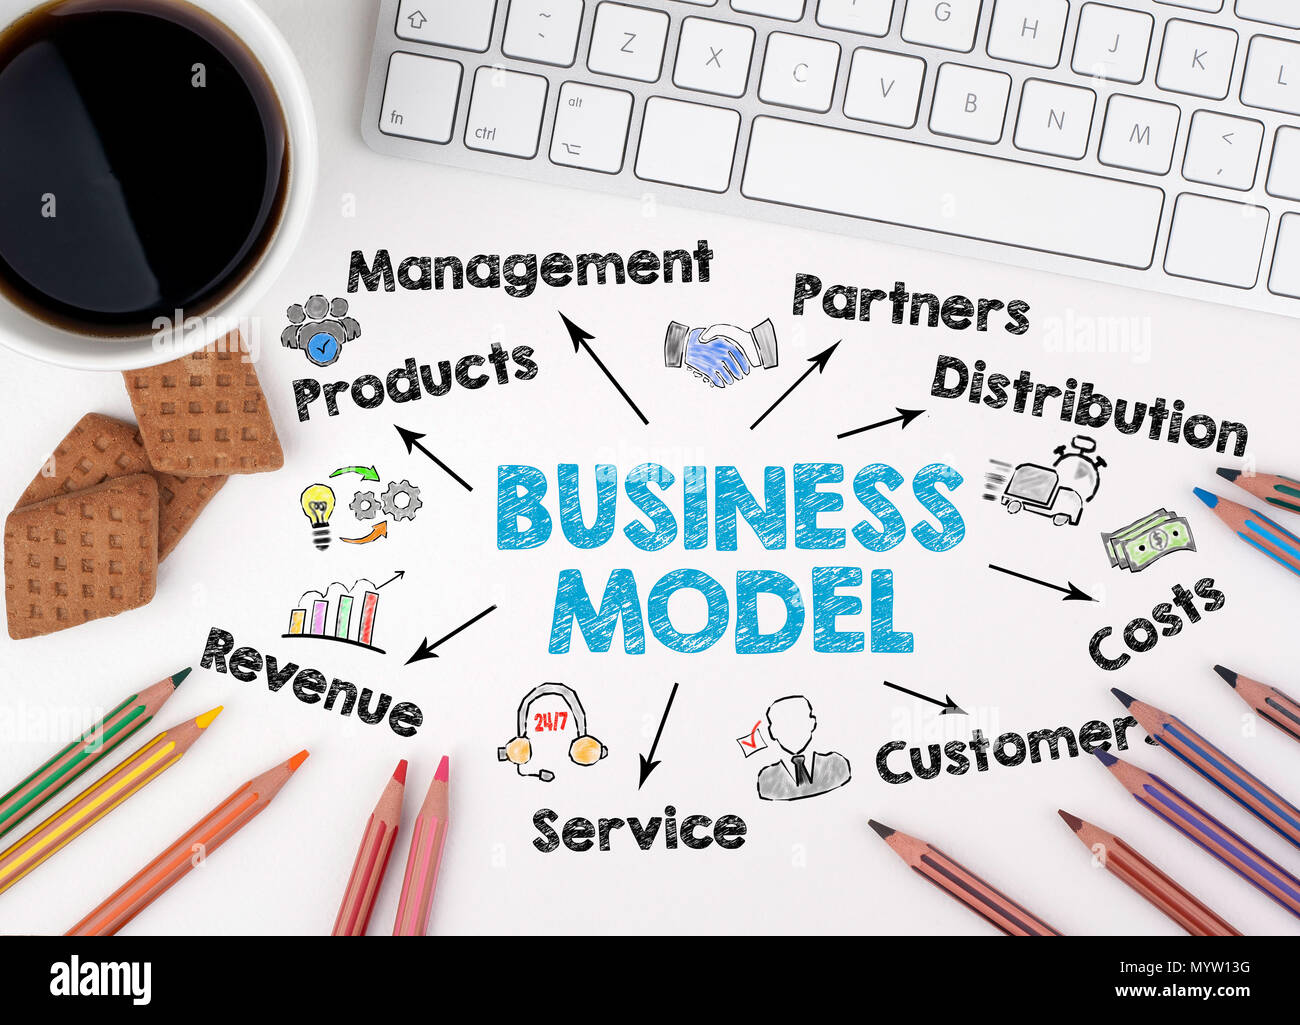 Business Model abstract Concept. Chart with keywords and icons - Stock Image